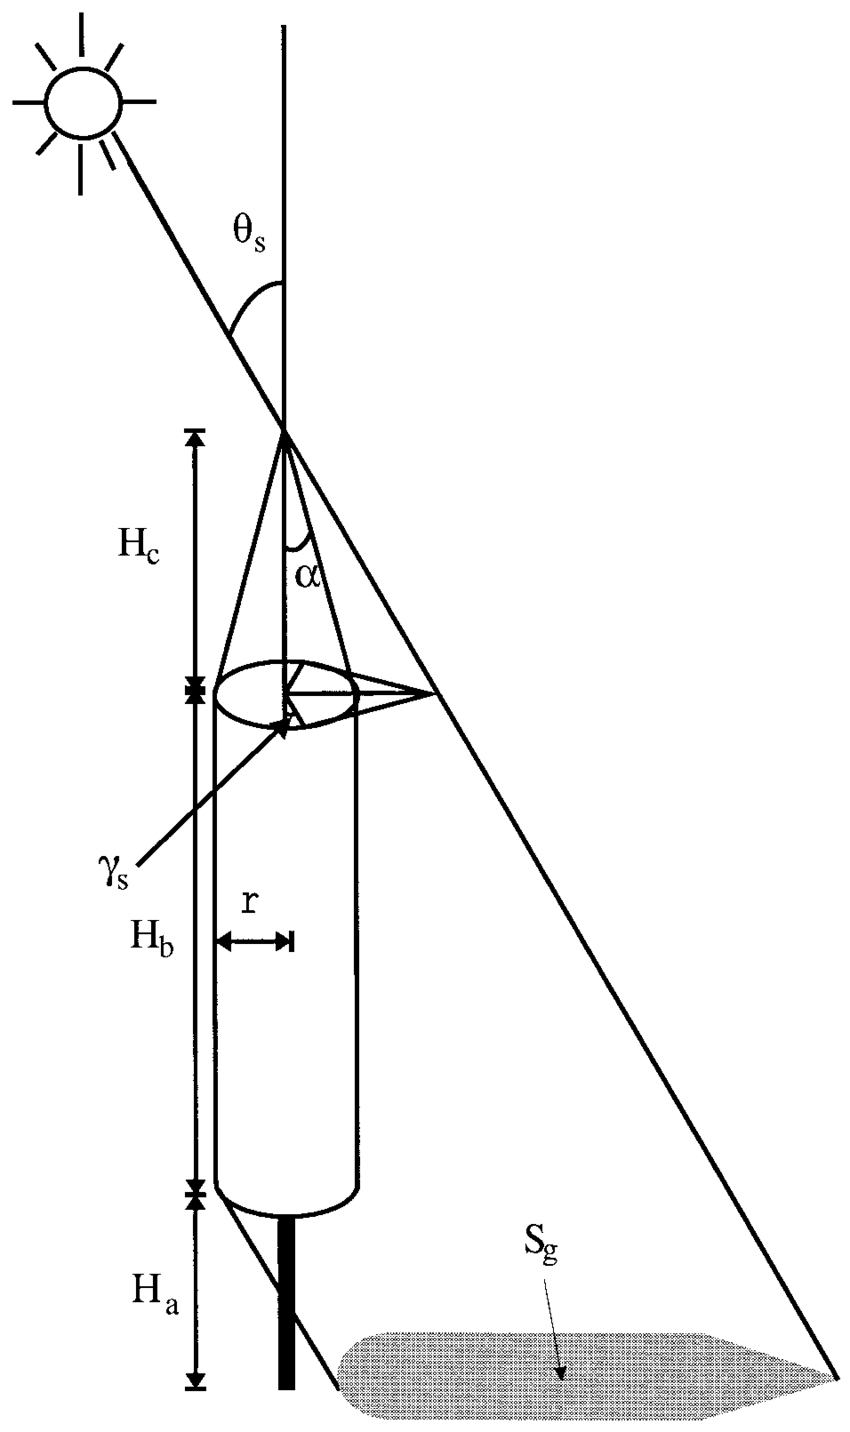 Tree Diagram Definition Tree Crown Geometry And The Definition Of Variables Used Download